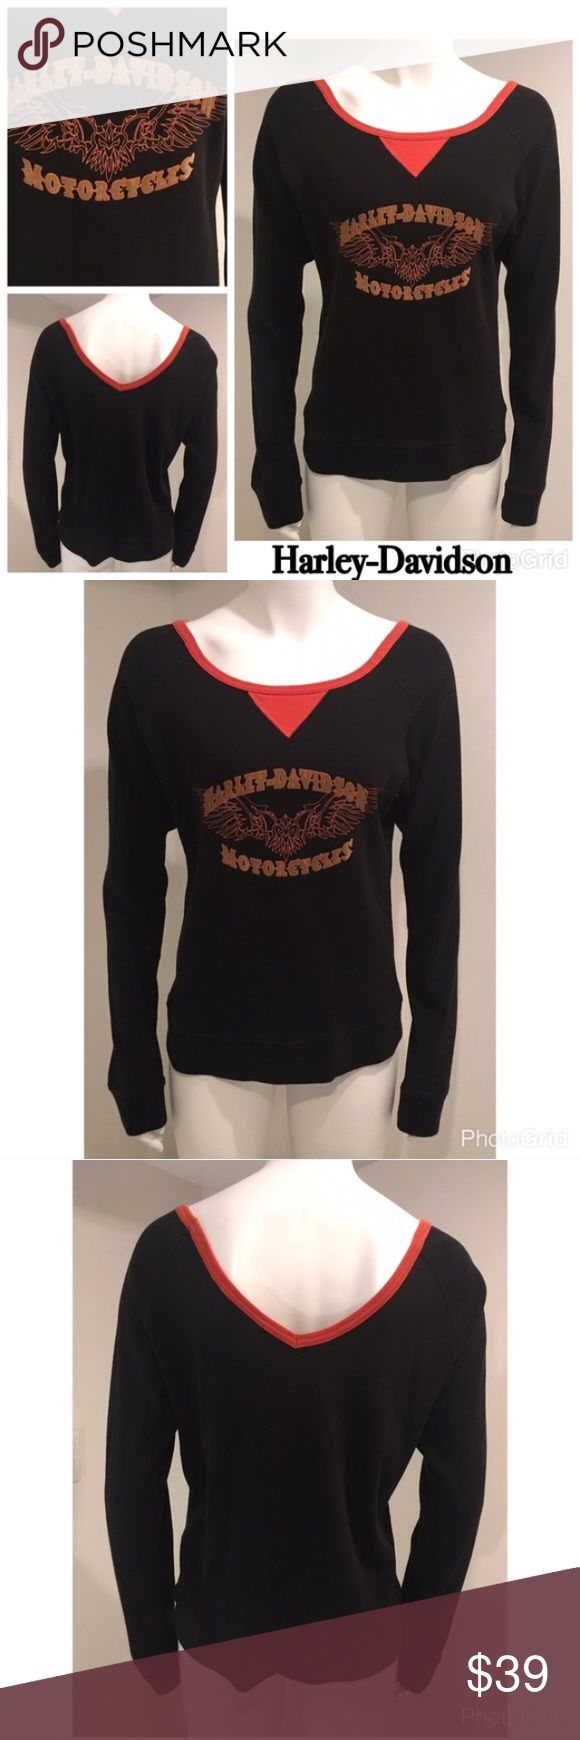 "Harley Davidson XL Women's LS T-Shirt / Sweatshirt Harley Davidson XL V-Neck Women's Black Orange 100% Cotton Long Sleeve -between sweatshirt & t-shirt material  No stains No holes Light wear Bust 21"" (armpit to armpit) Harley-Davidson Tops"